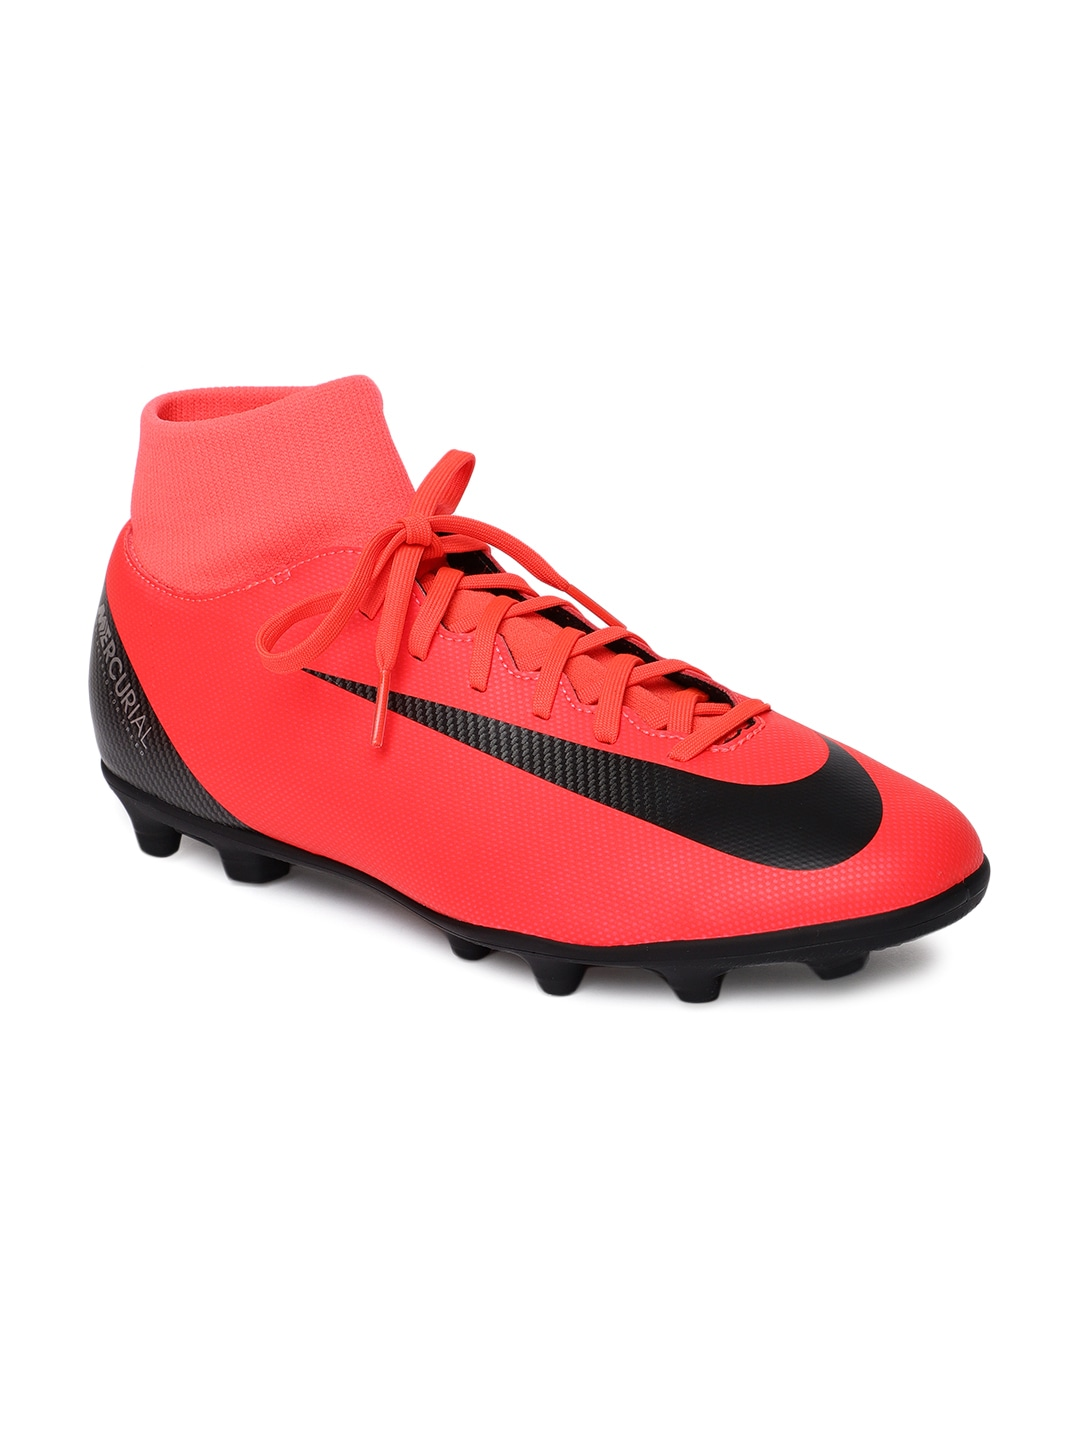 Football Shoes - Buy Football Studs Online for Men   Women in India a733997c826c